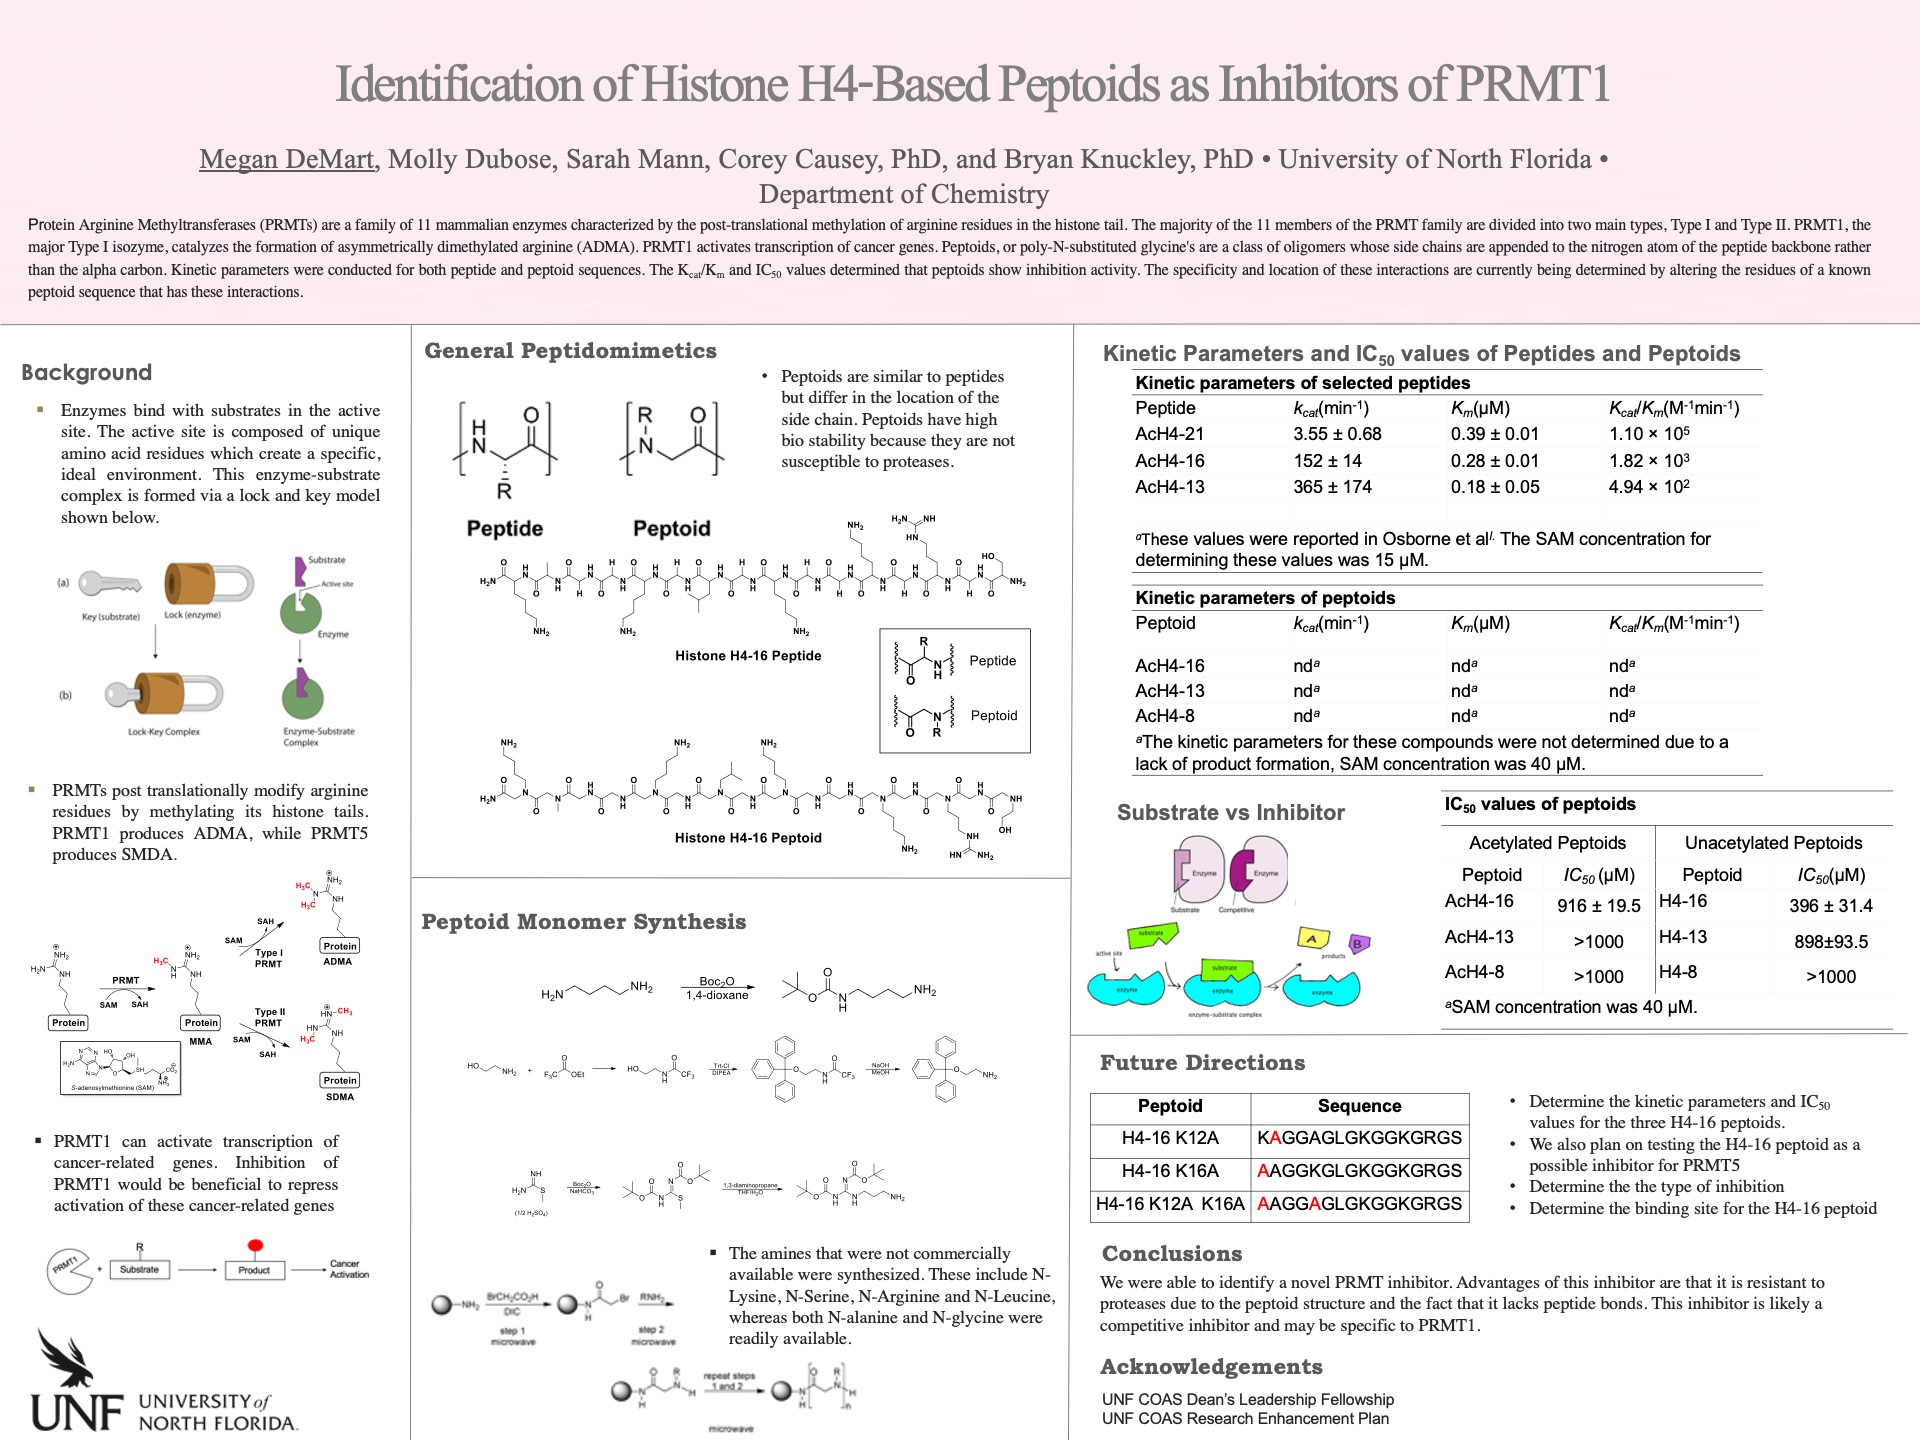 Identification of Histone H4-Based Peptoids as Inhibitors of PRMT1 poster